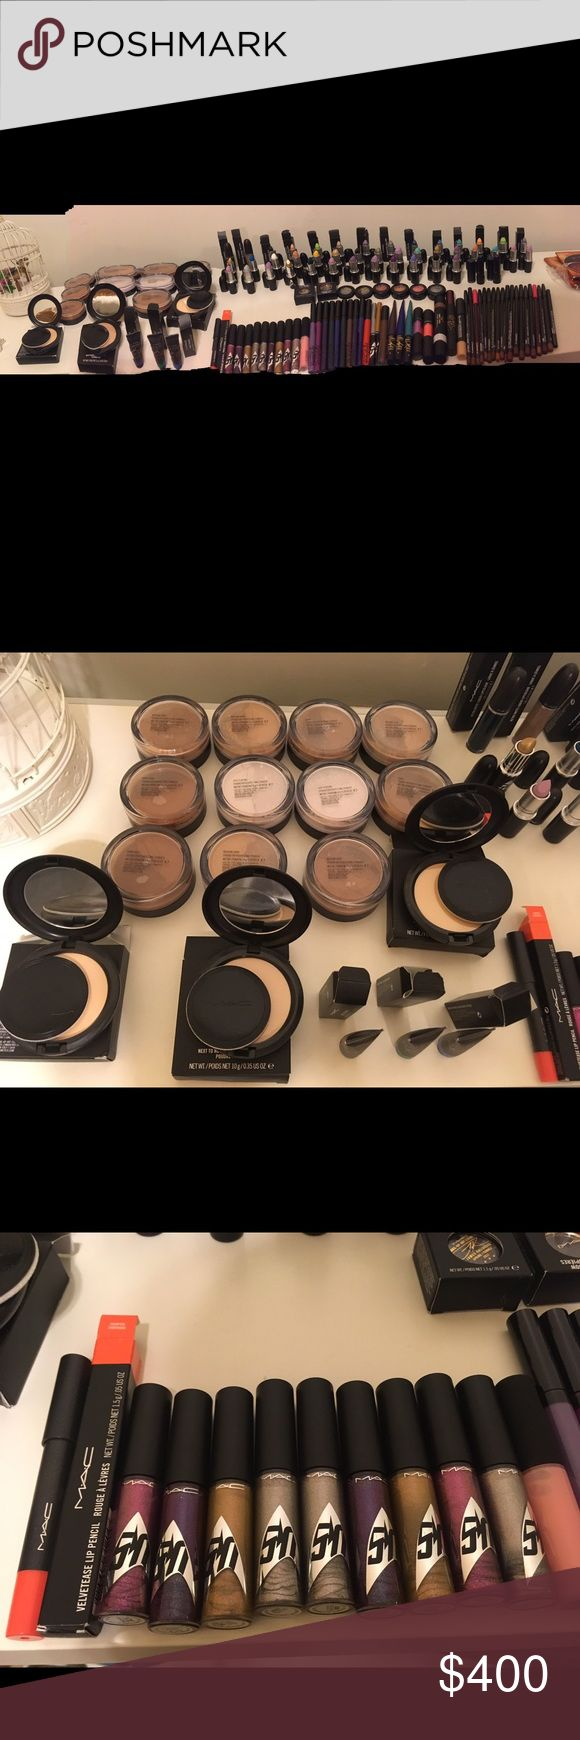 MAC lot 129 pieces of makeup All are authentic MAC Lip liners, pressed powders, loose powders, lipstick, some 2017 spring collections, kabuki magic paint, glosses, lip stains, eye shadows, etc. there are approximately 129 pieces of makeup MAC Cosmetics Makeup Face Powder